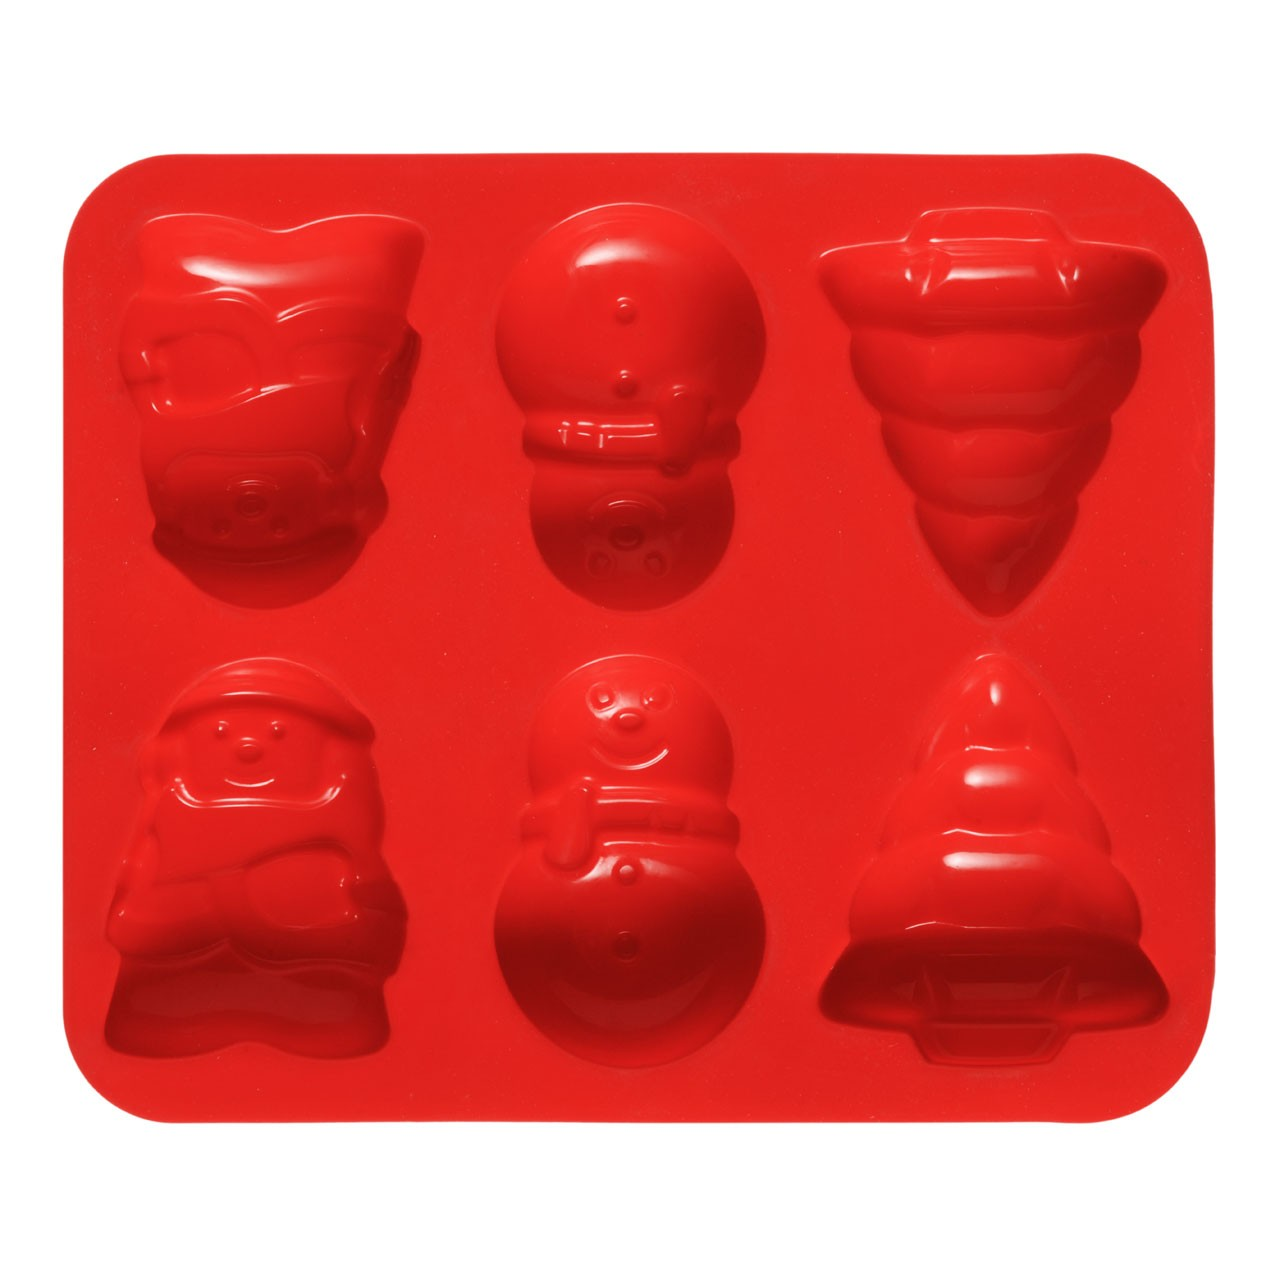 6 Christmas Cake Mould Tray - Red